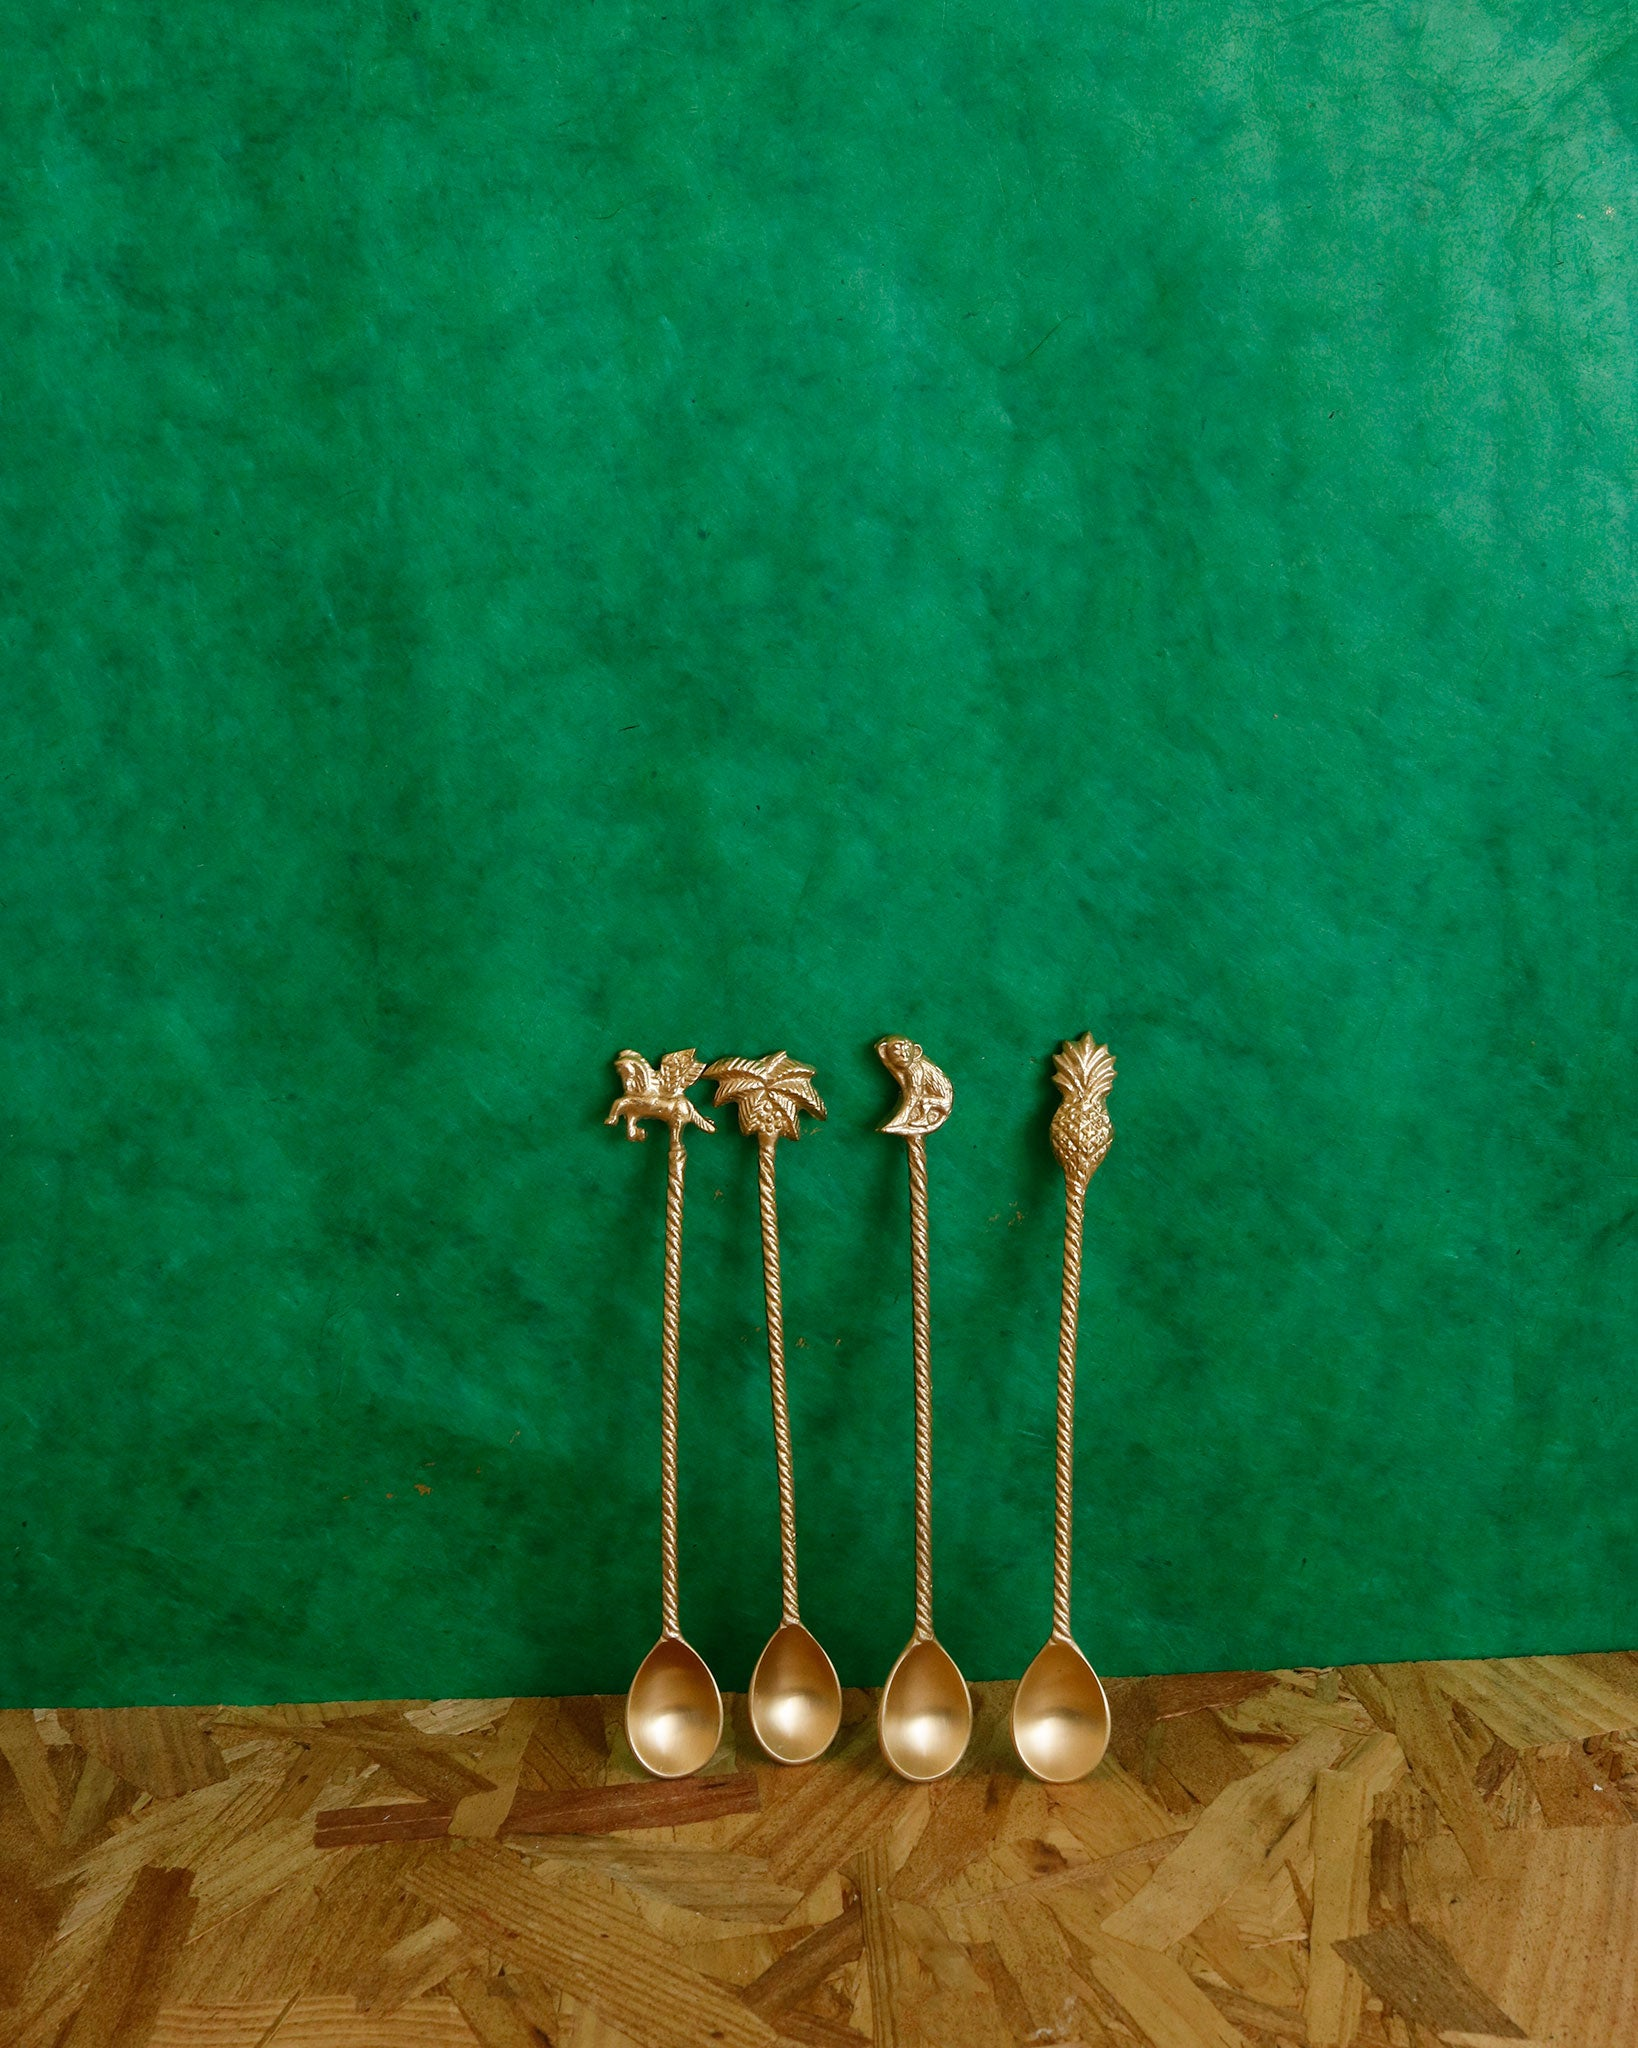 Majestic Long Spoons in Brass